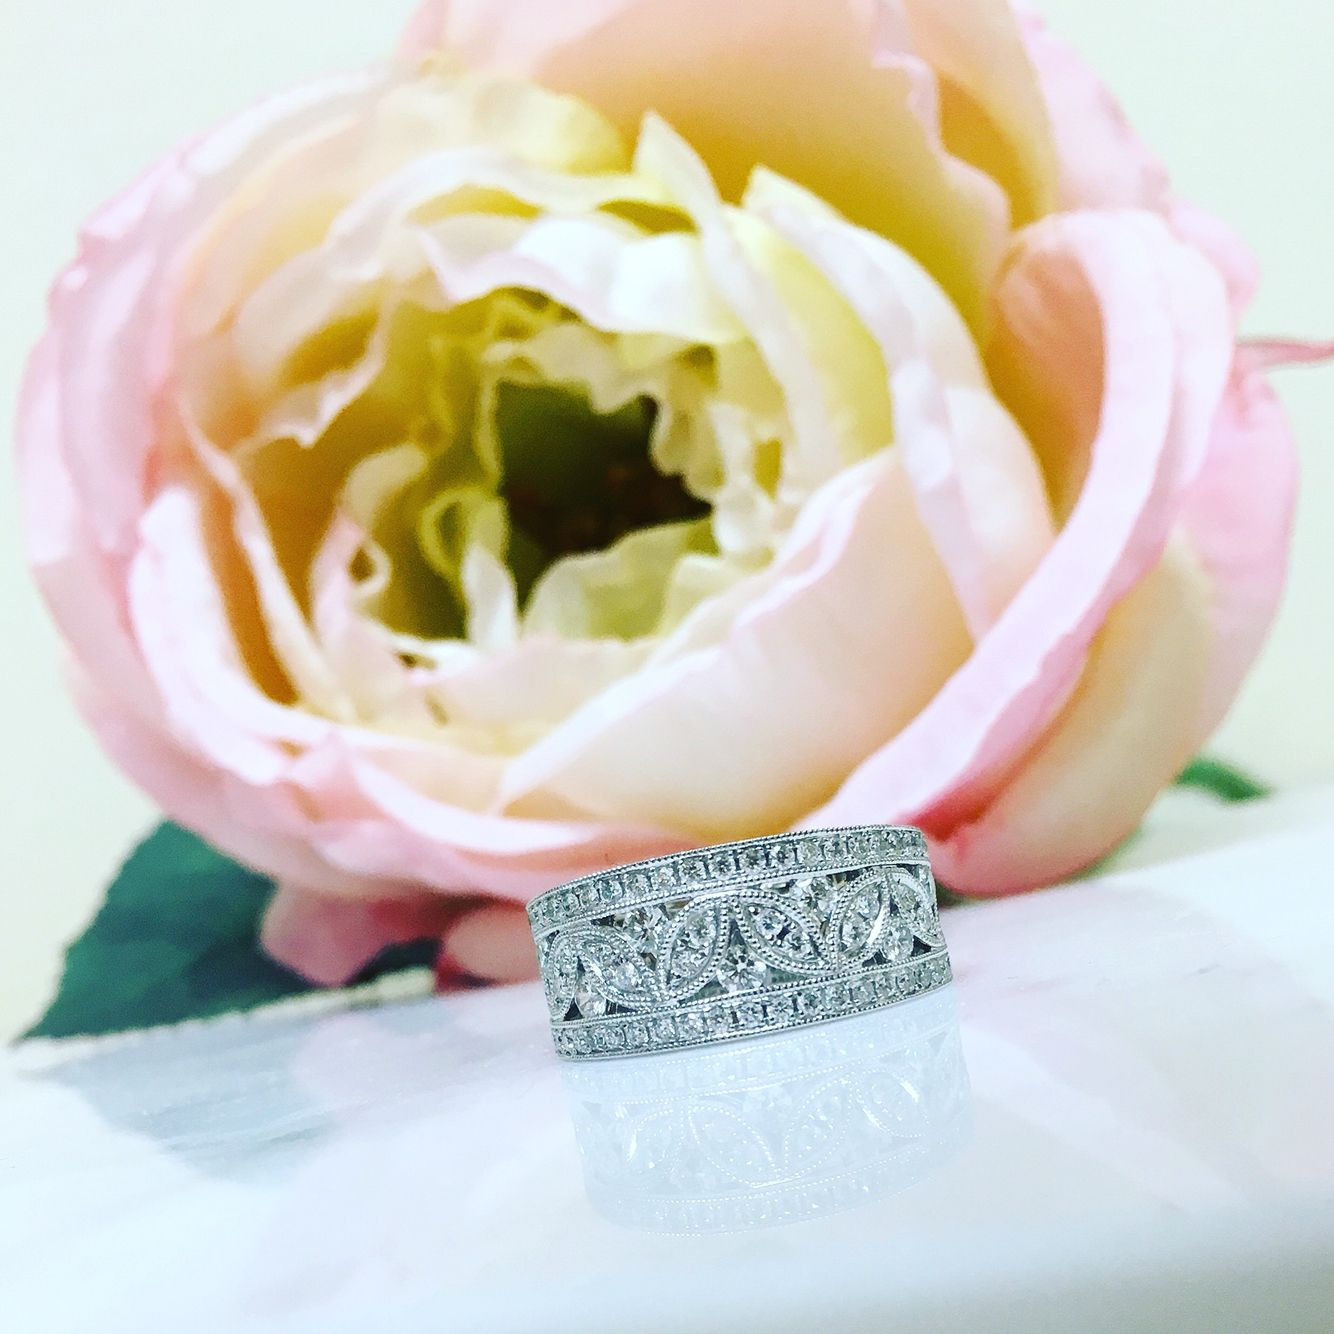 Lady's 14 kt white gold Vintage Detail Inspired Daimond Ring With 73=0.73Tw Round Diamonds